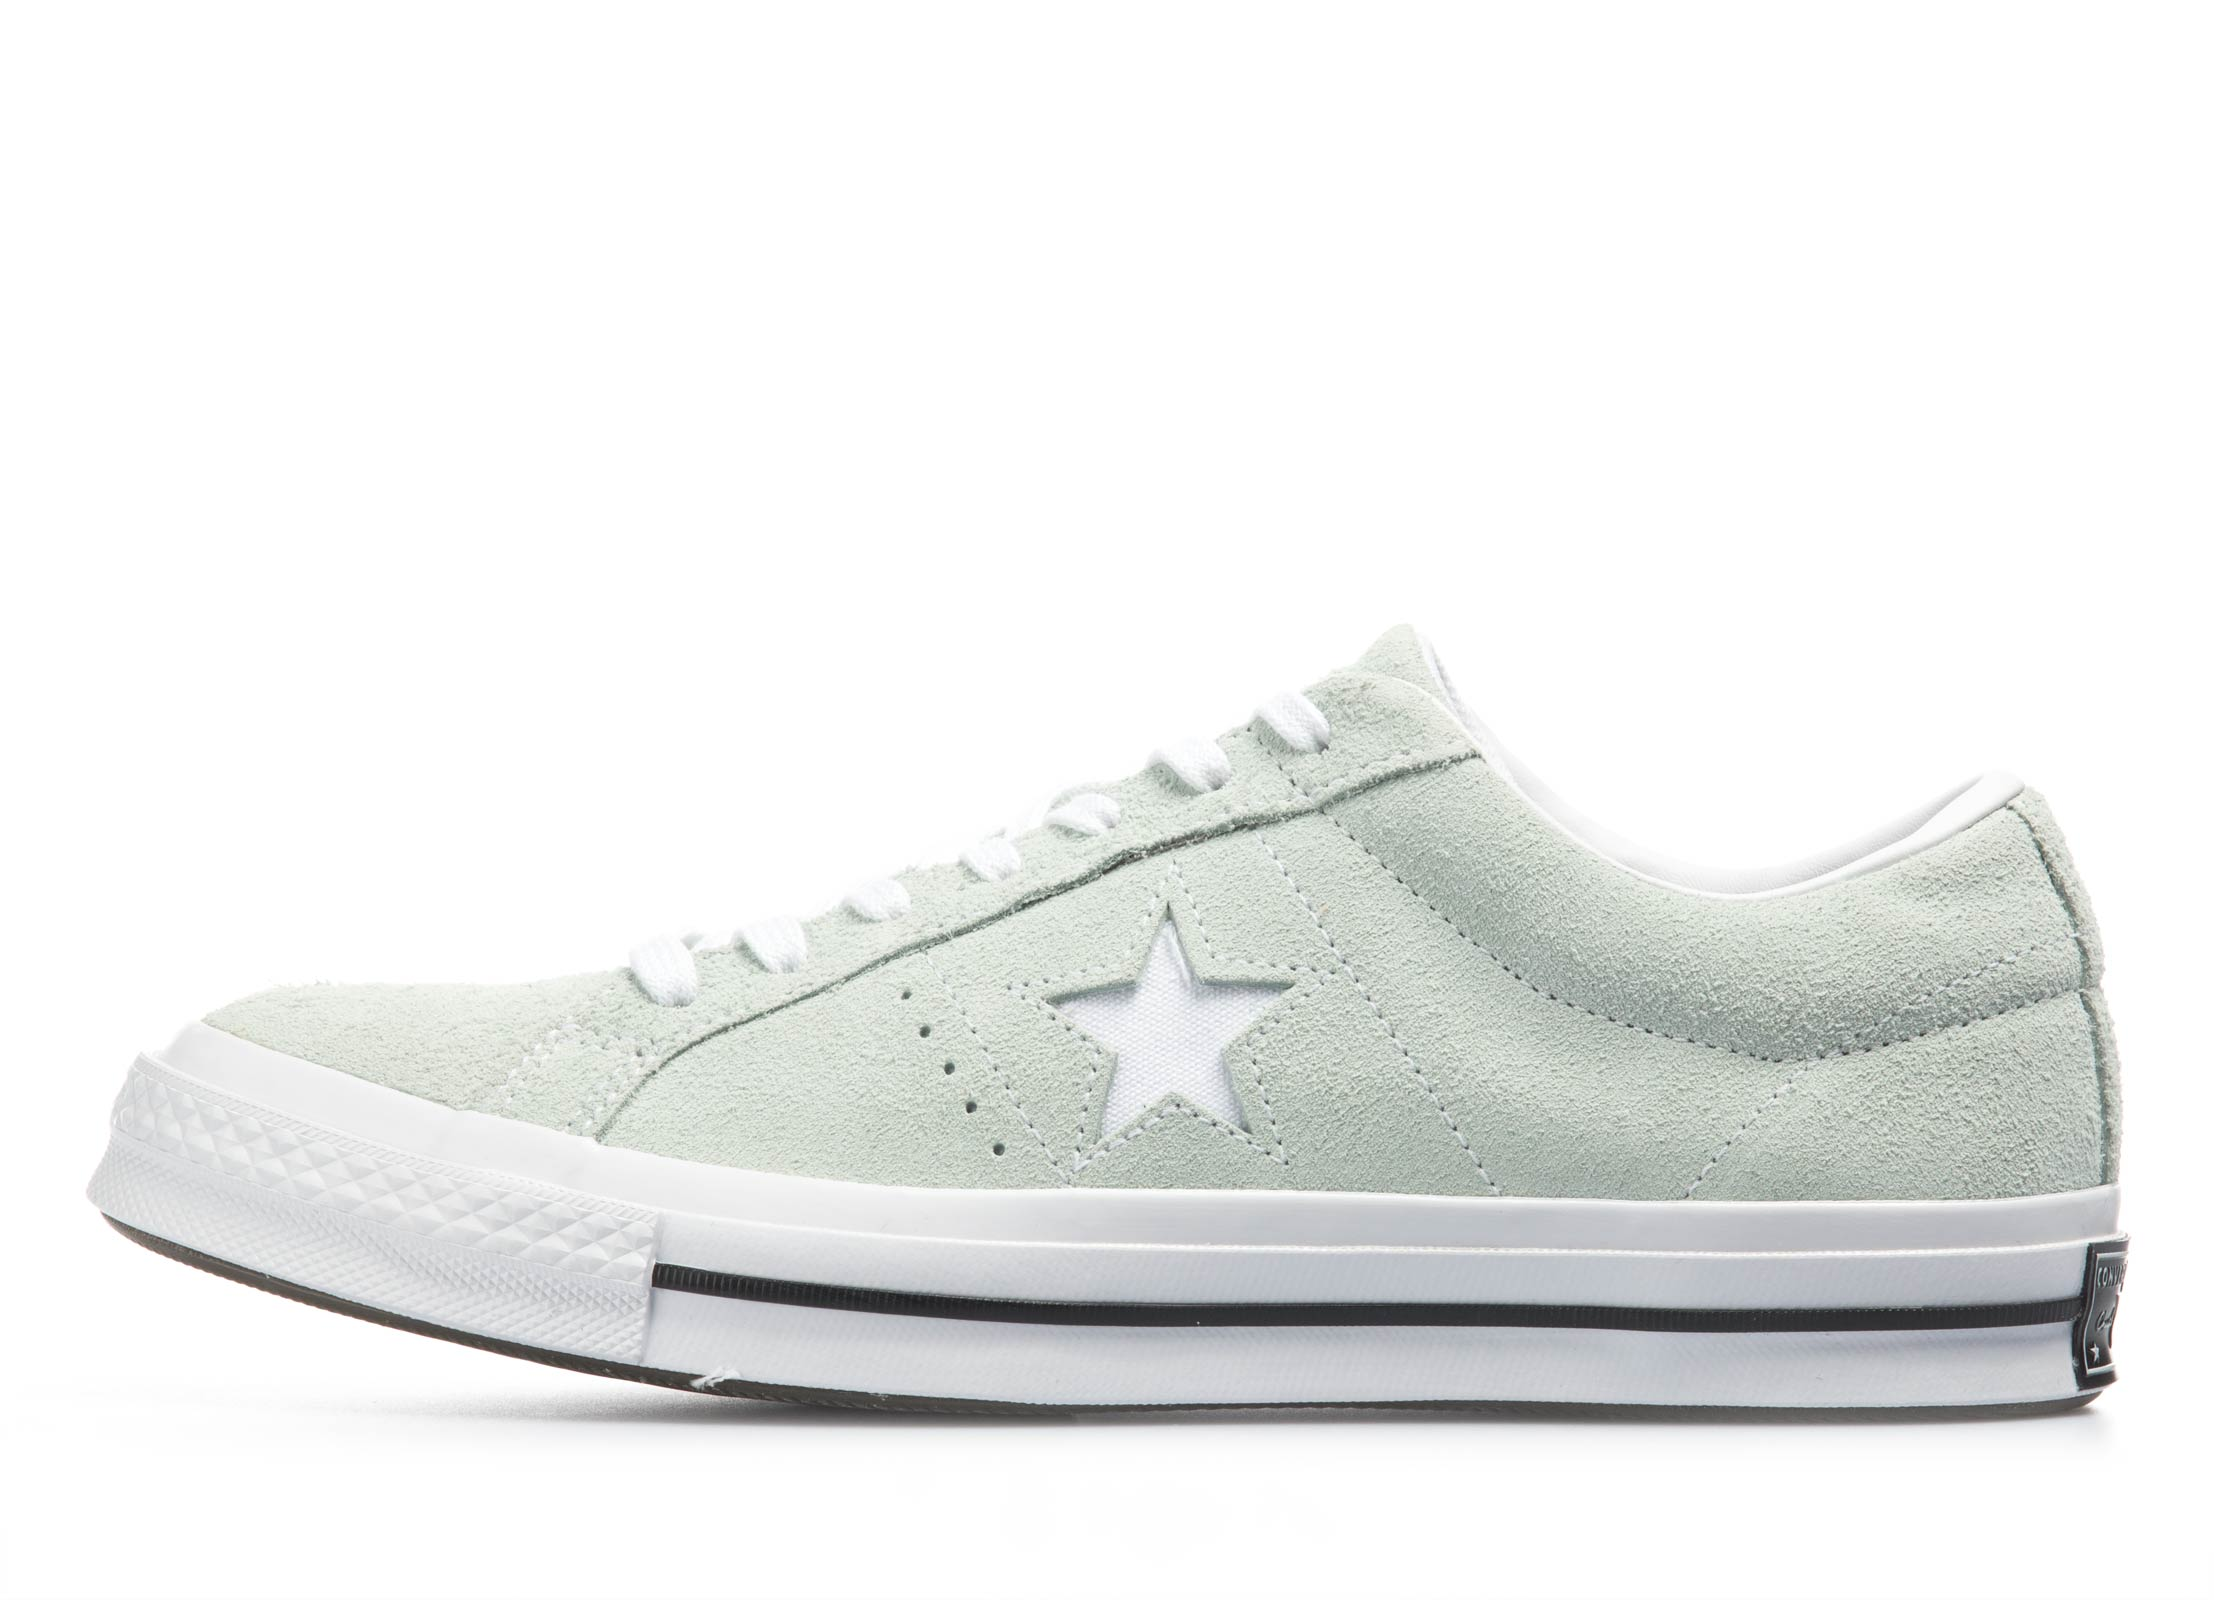 CONVERSE ONE STAR OX 159493C Οινοπνευματί